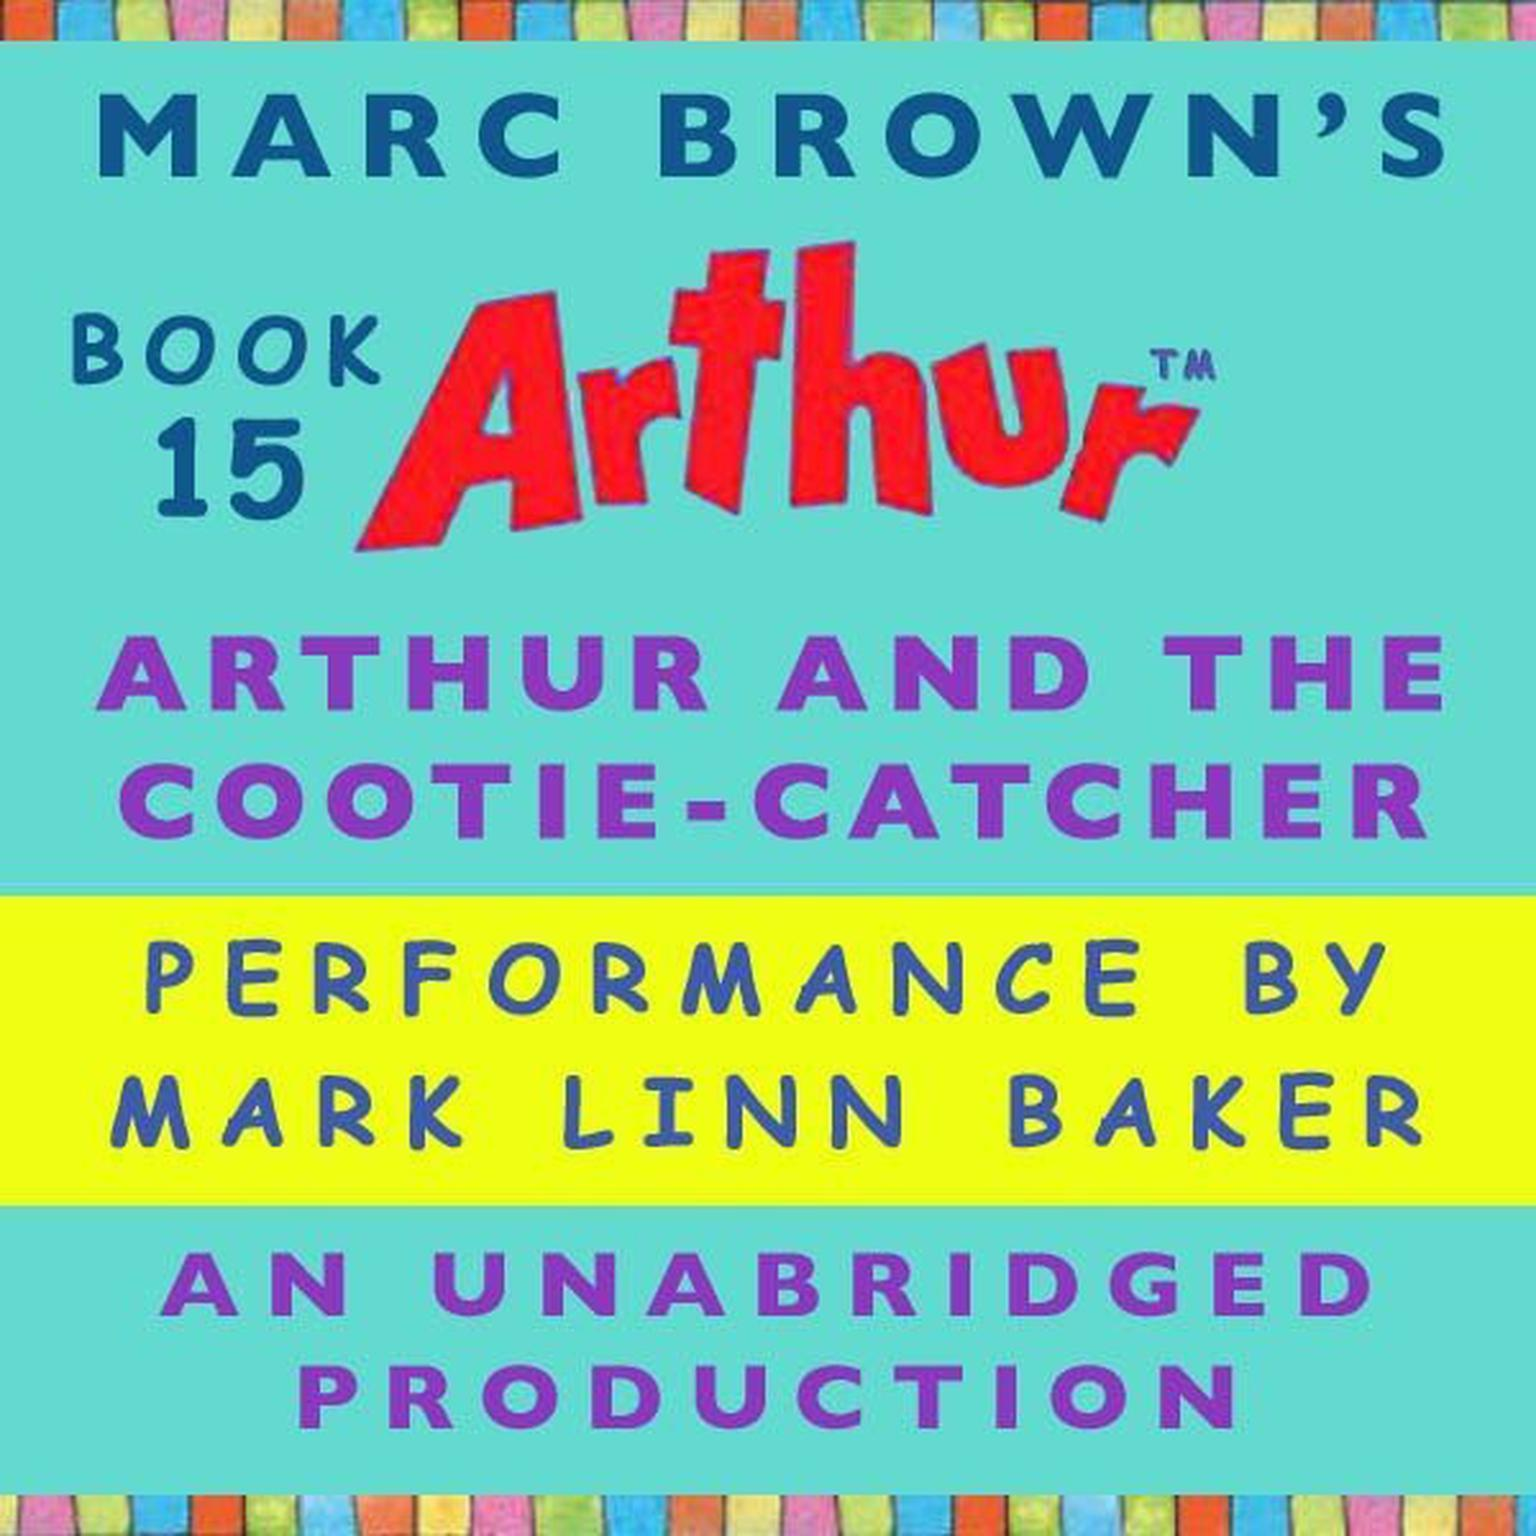 Download Arthur And The Cootie Catcher Audiobook By Marc Brown For Just 595